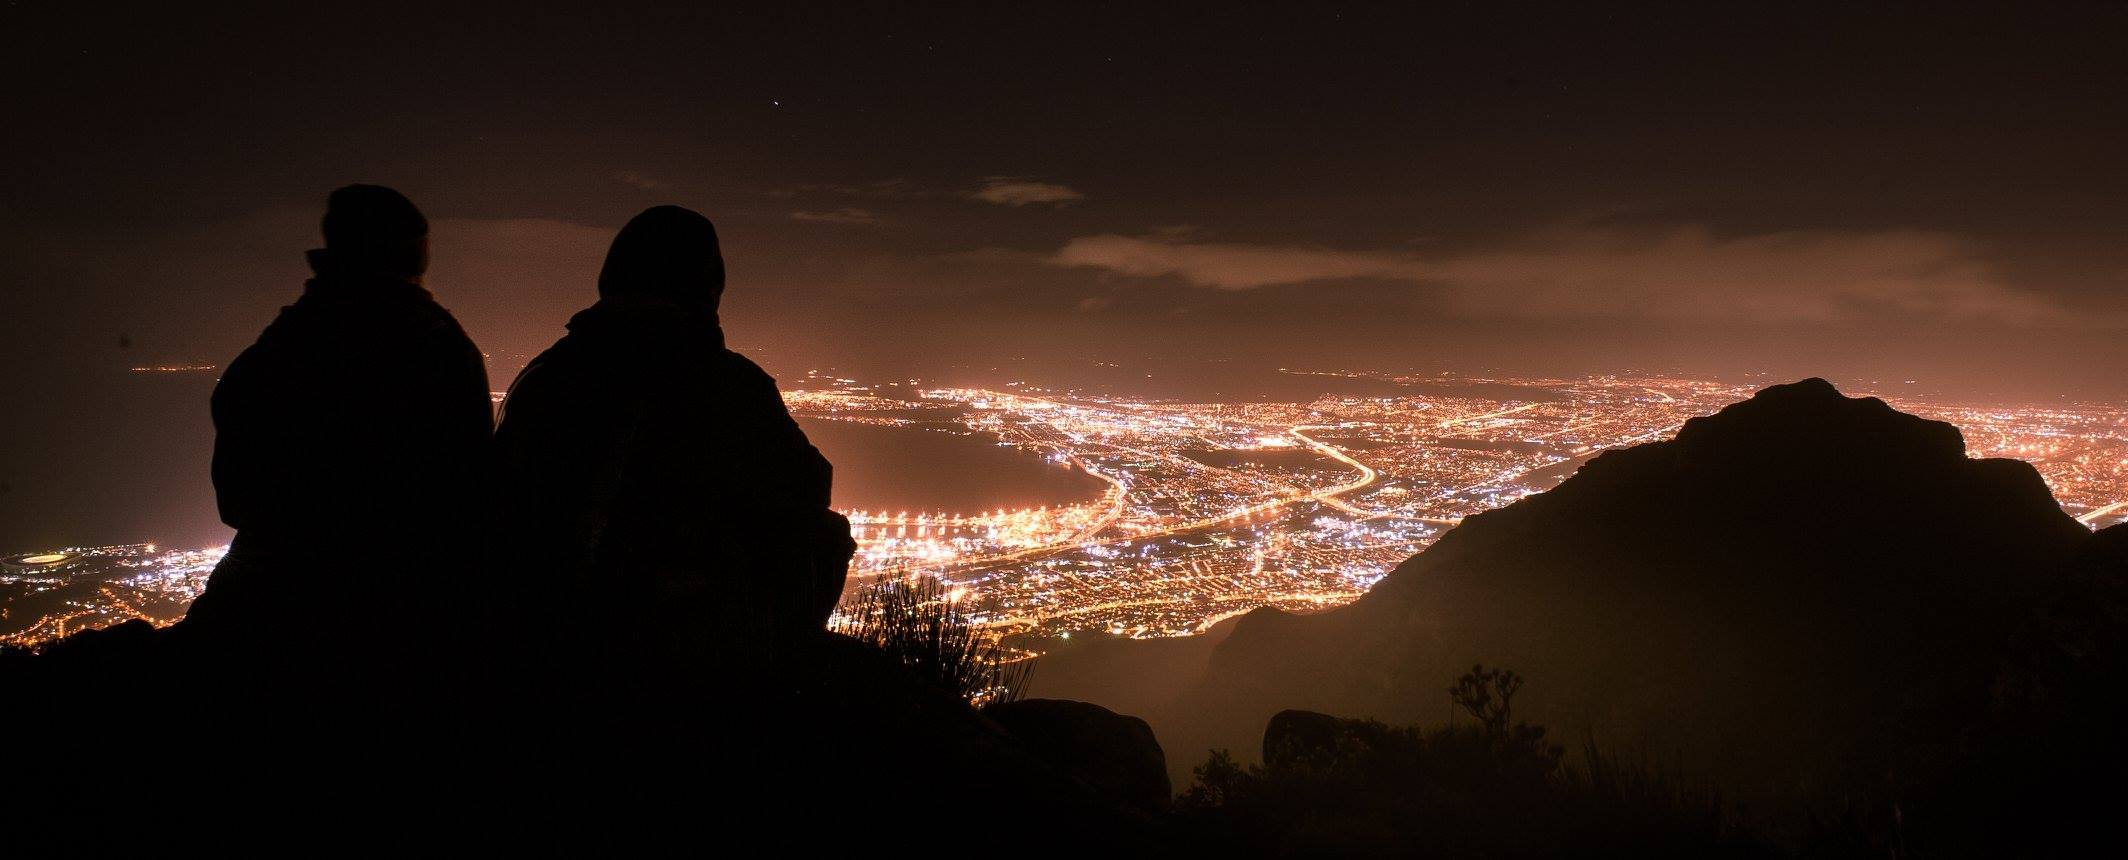 The silhouettes of two people overlooking Cape Town's Table Mountain at night.